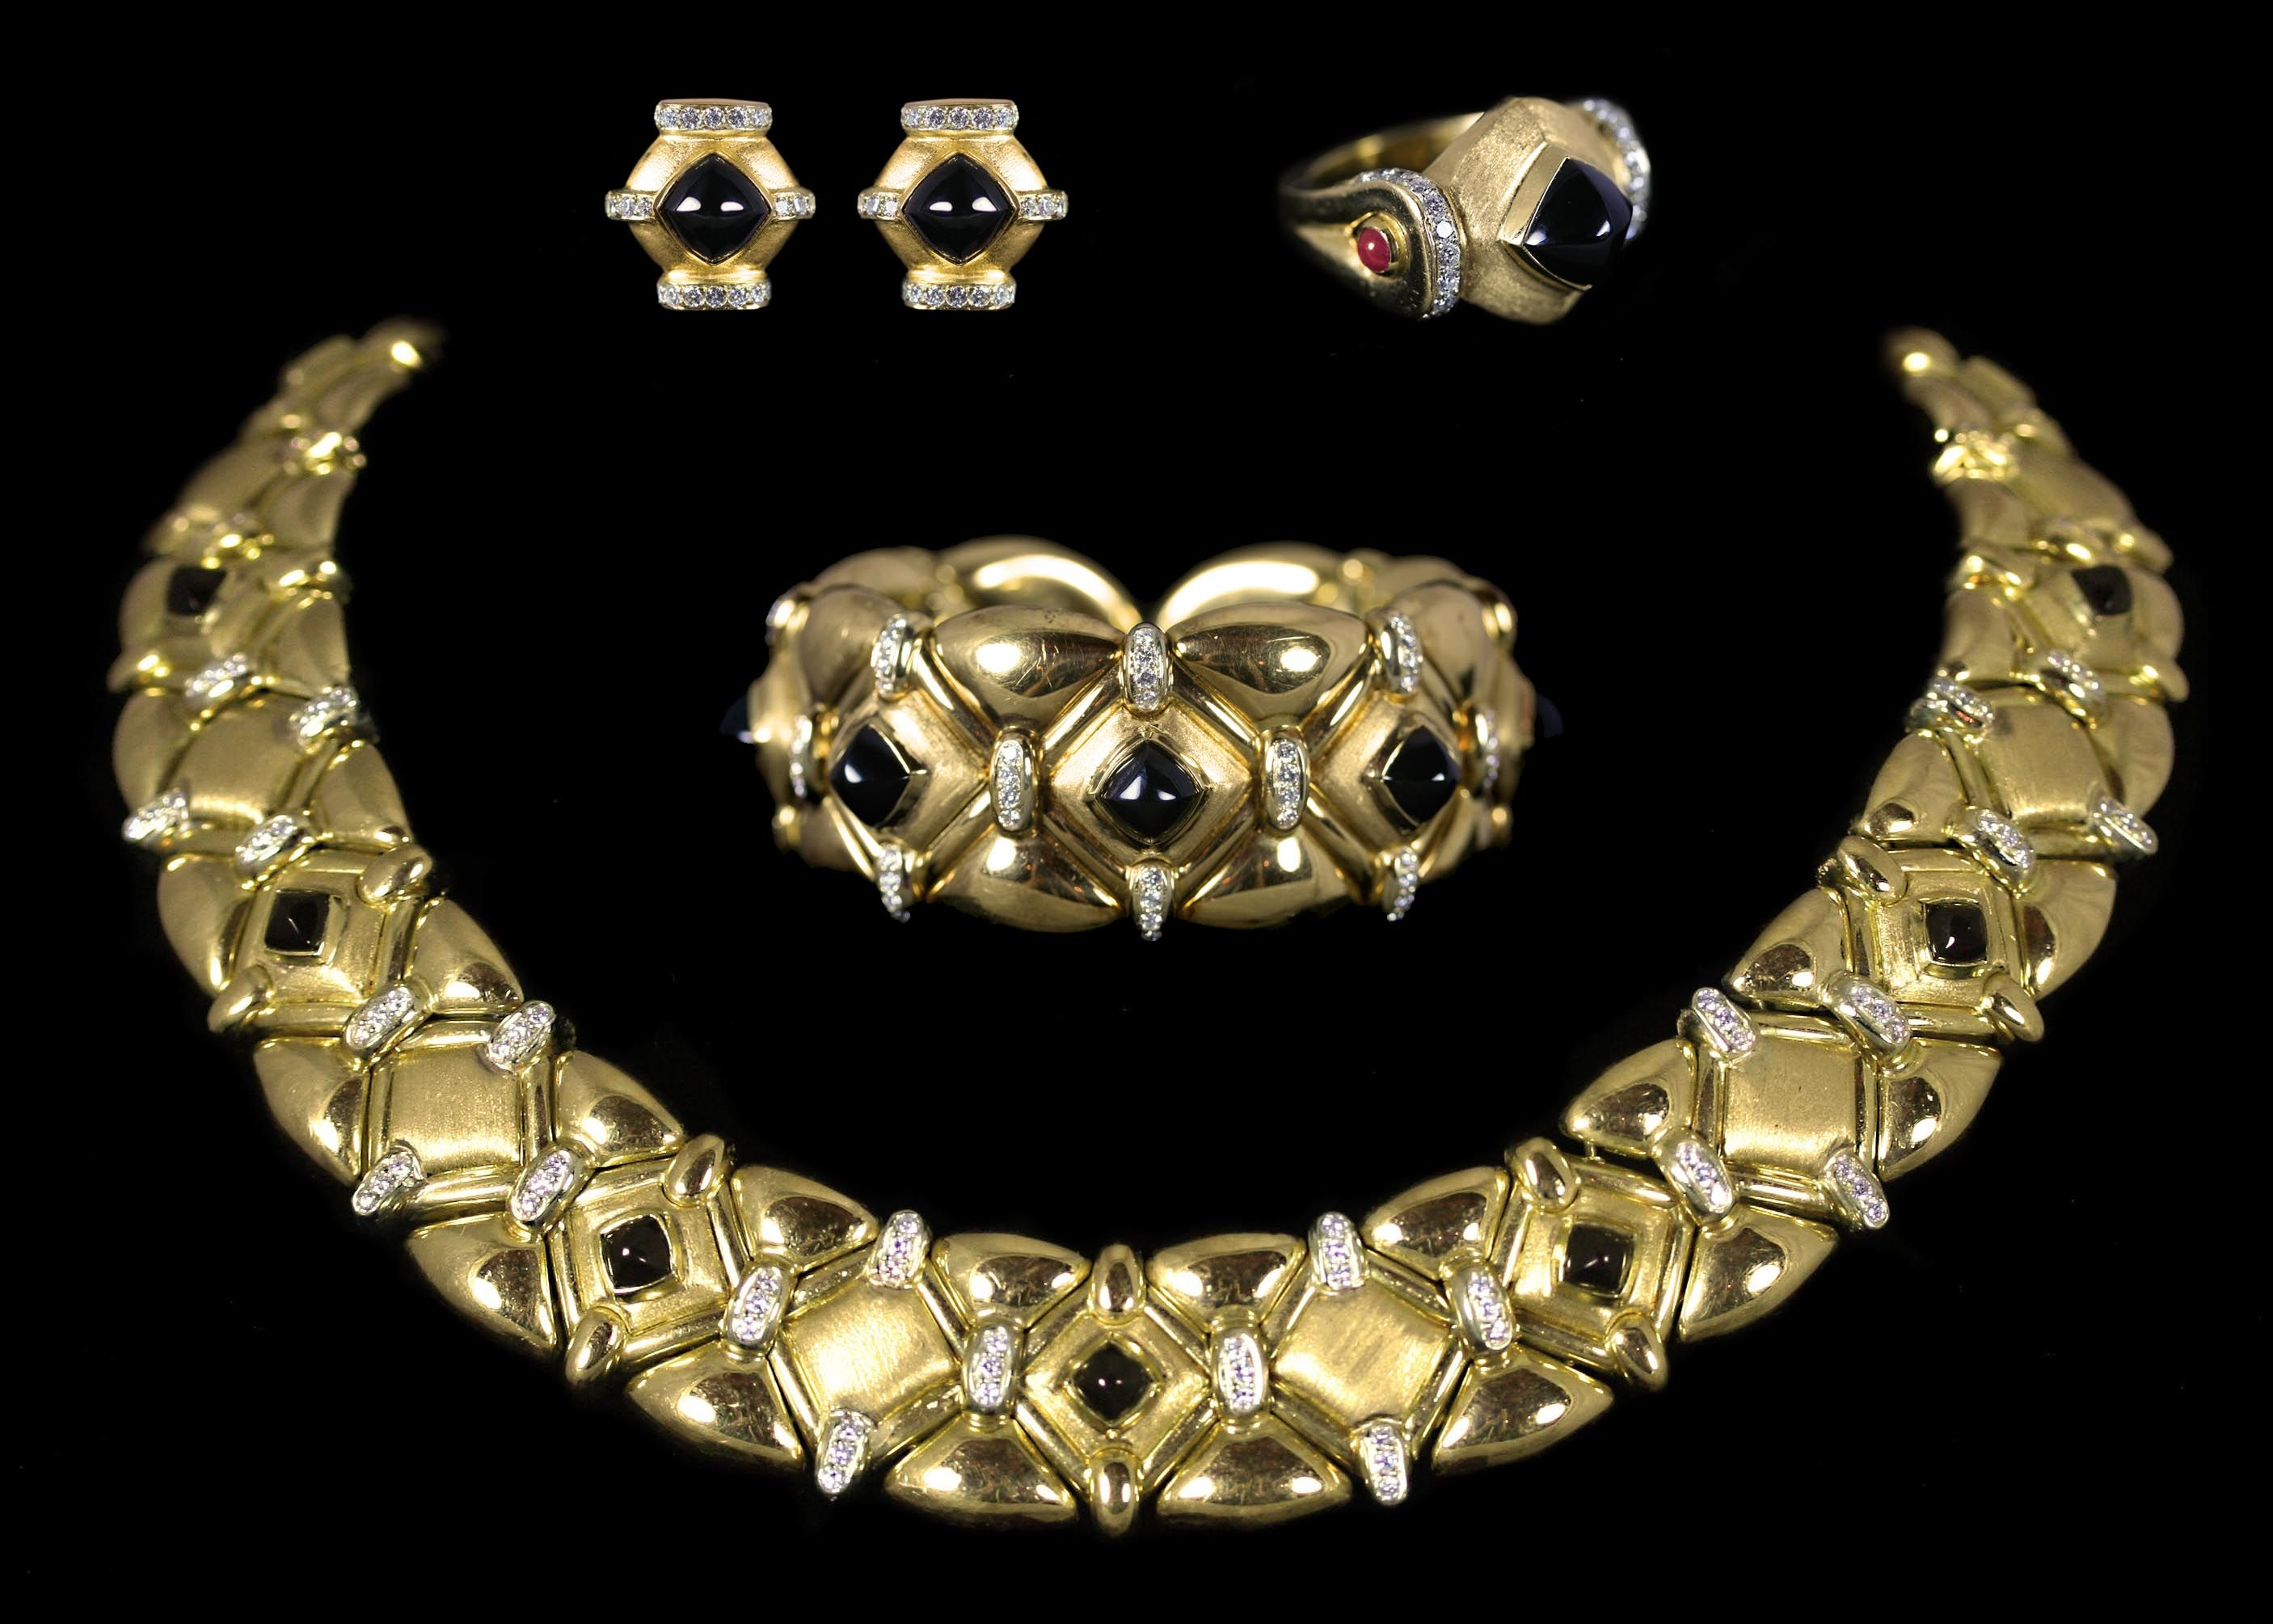 Black Onyx Set. This set comes with a necklace, earrings, ring, and a bracelet. This set has a total of approximately 7.00 carats of Diamonds and Black Onyx. All the pieces are set in 18 karat Yellow Gold.